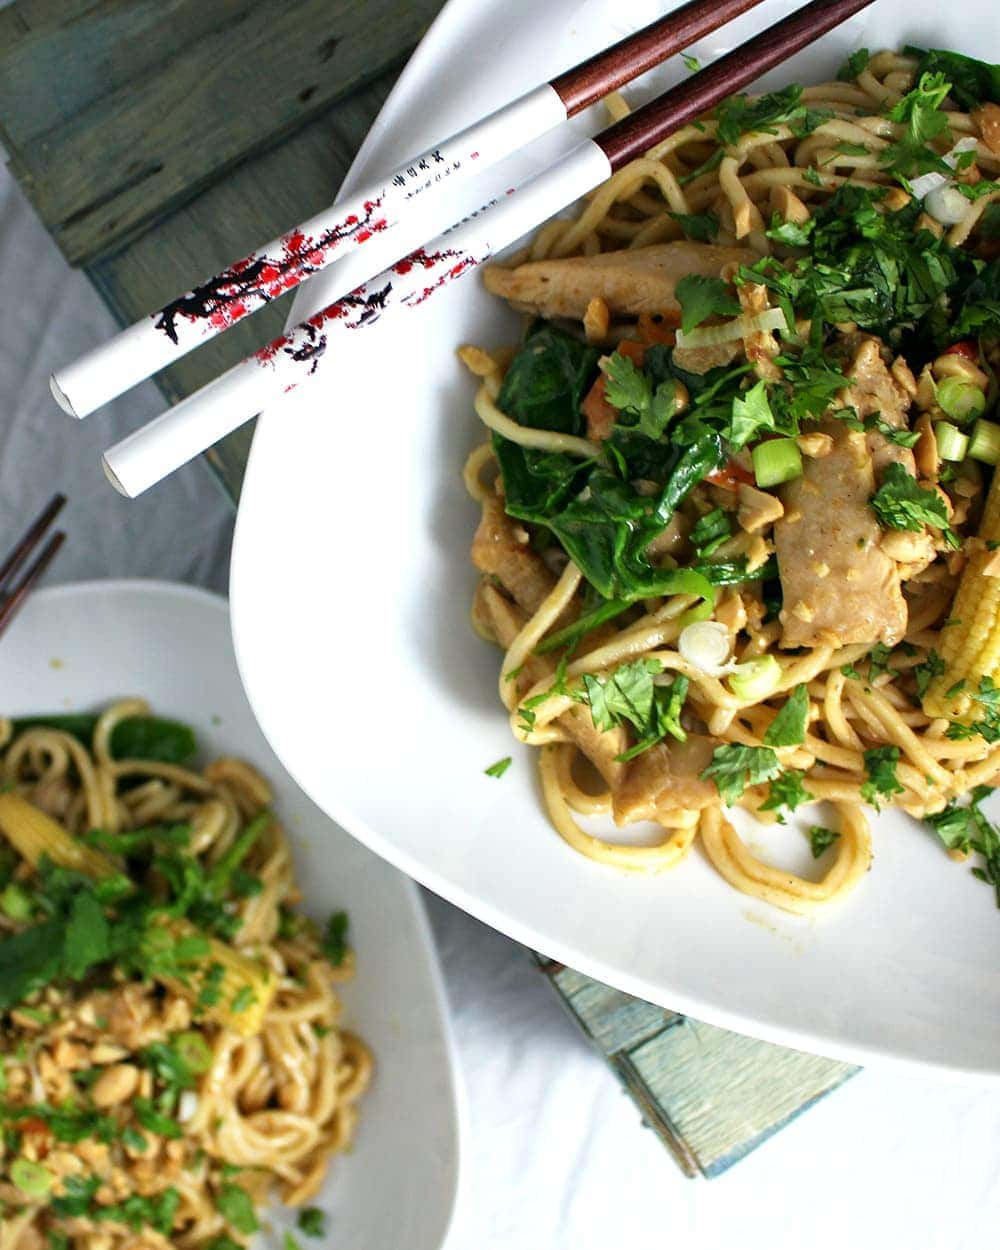 This satay chicken stir fry is packed full of healthy veg and has a rich nutty sauce which makes it perfect for a weeknight dinner.